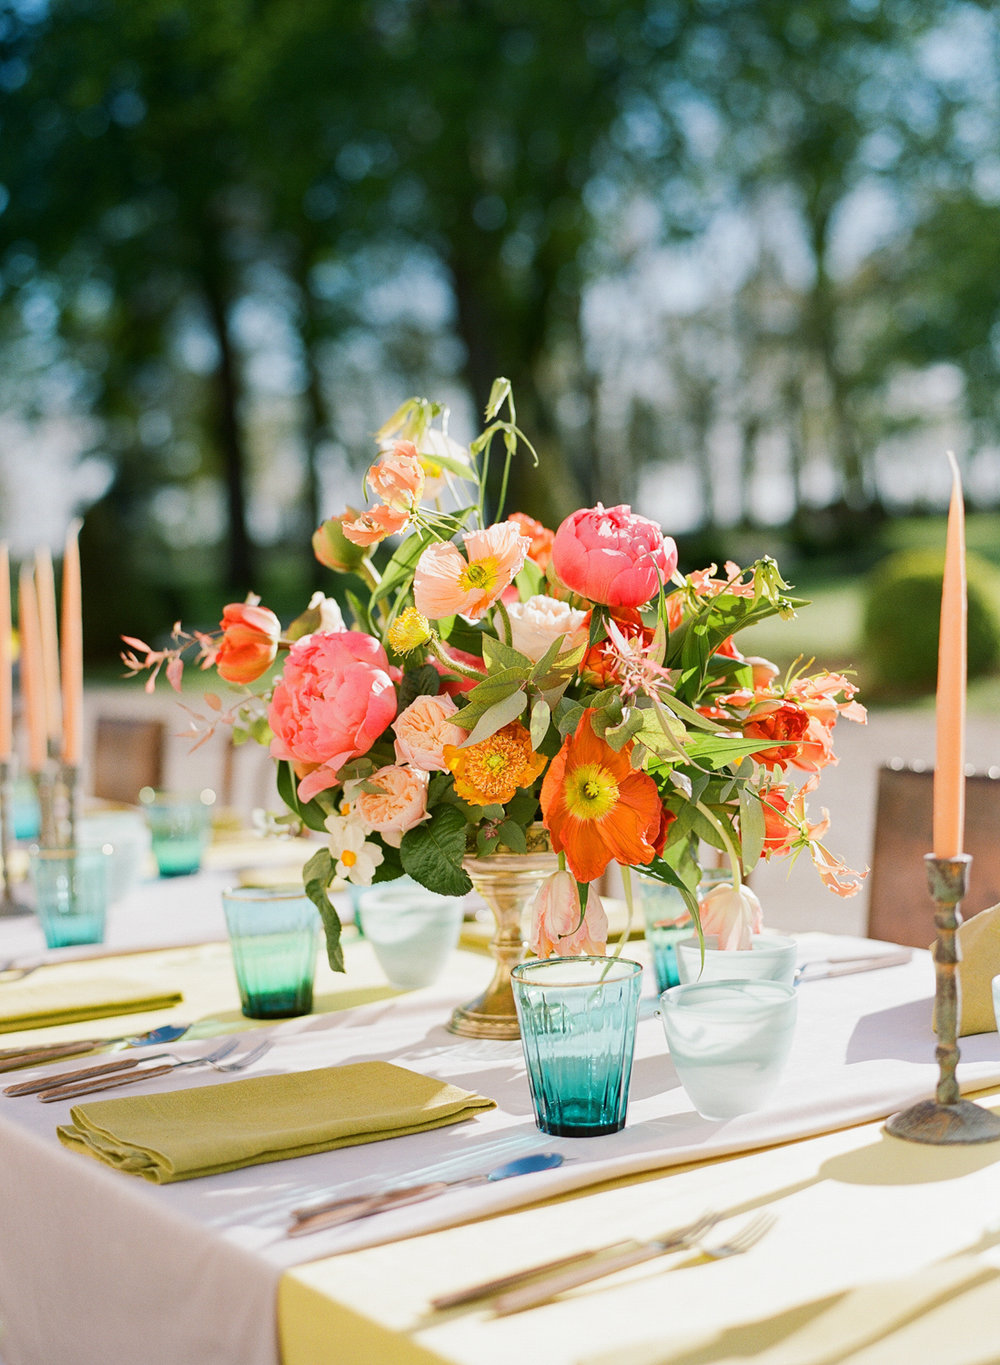 Jewel-toned glassware and florals at a Burgundy wedding reception; Sylvie Gil Photography